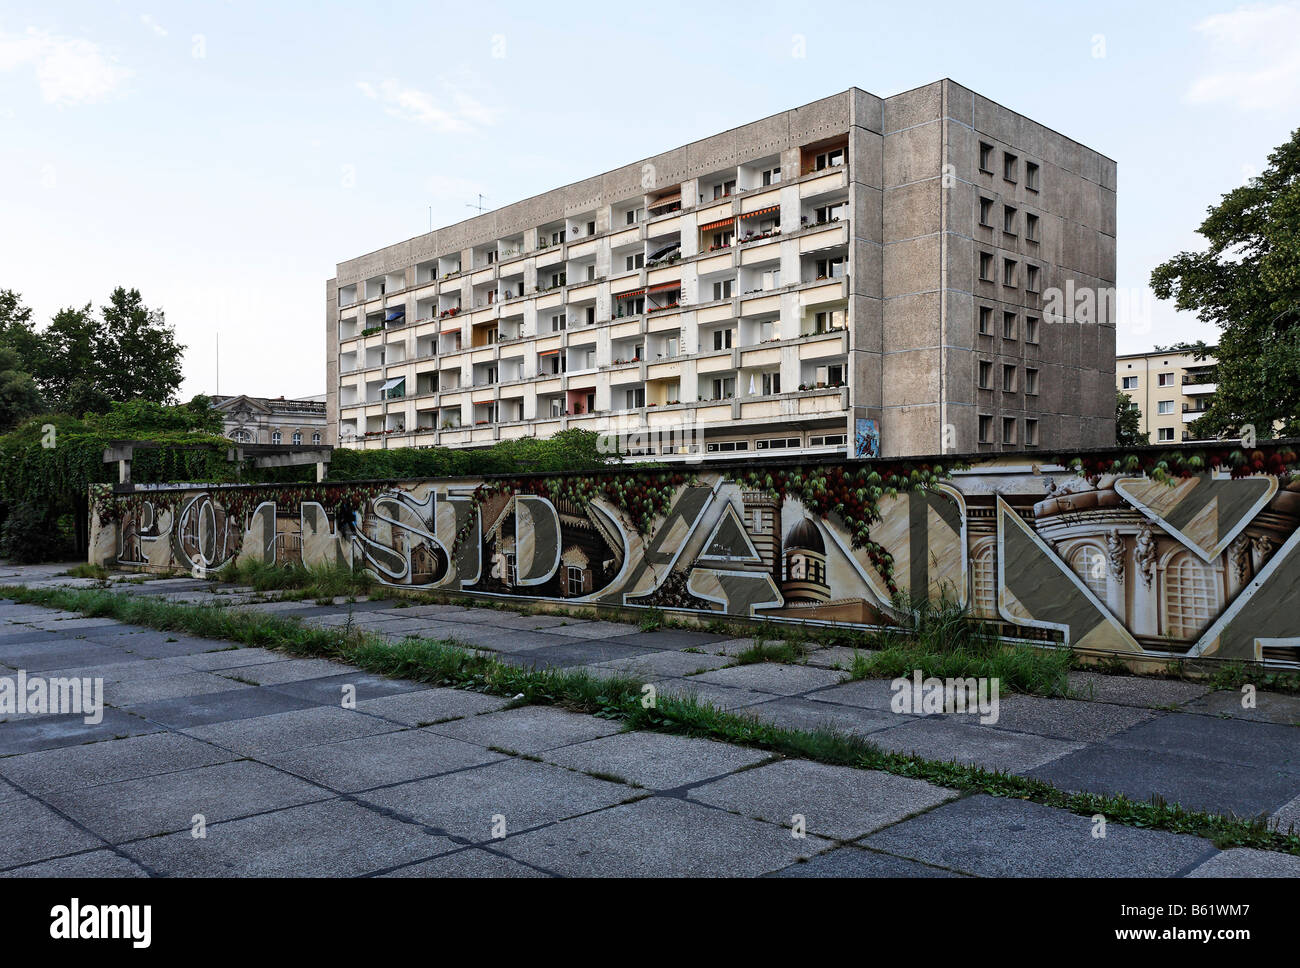 Depressing pre-fabricated building from DDR times, wall with graffiti writing Potsdam, inner city, Brandenburg, - Stock Image